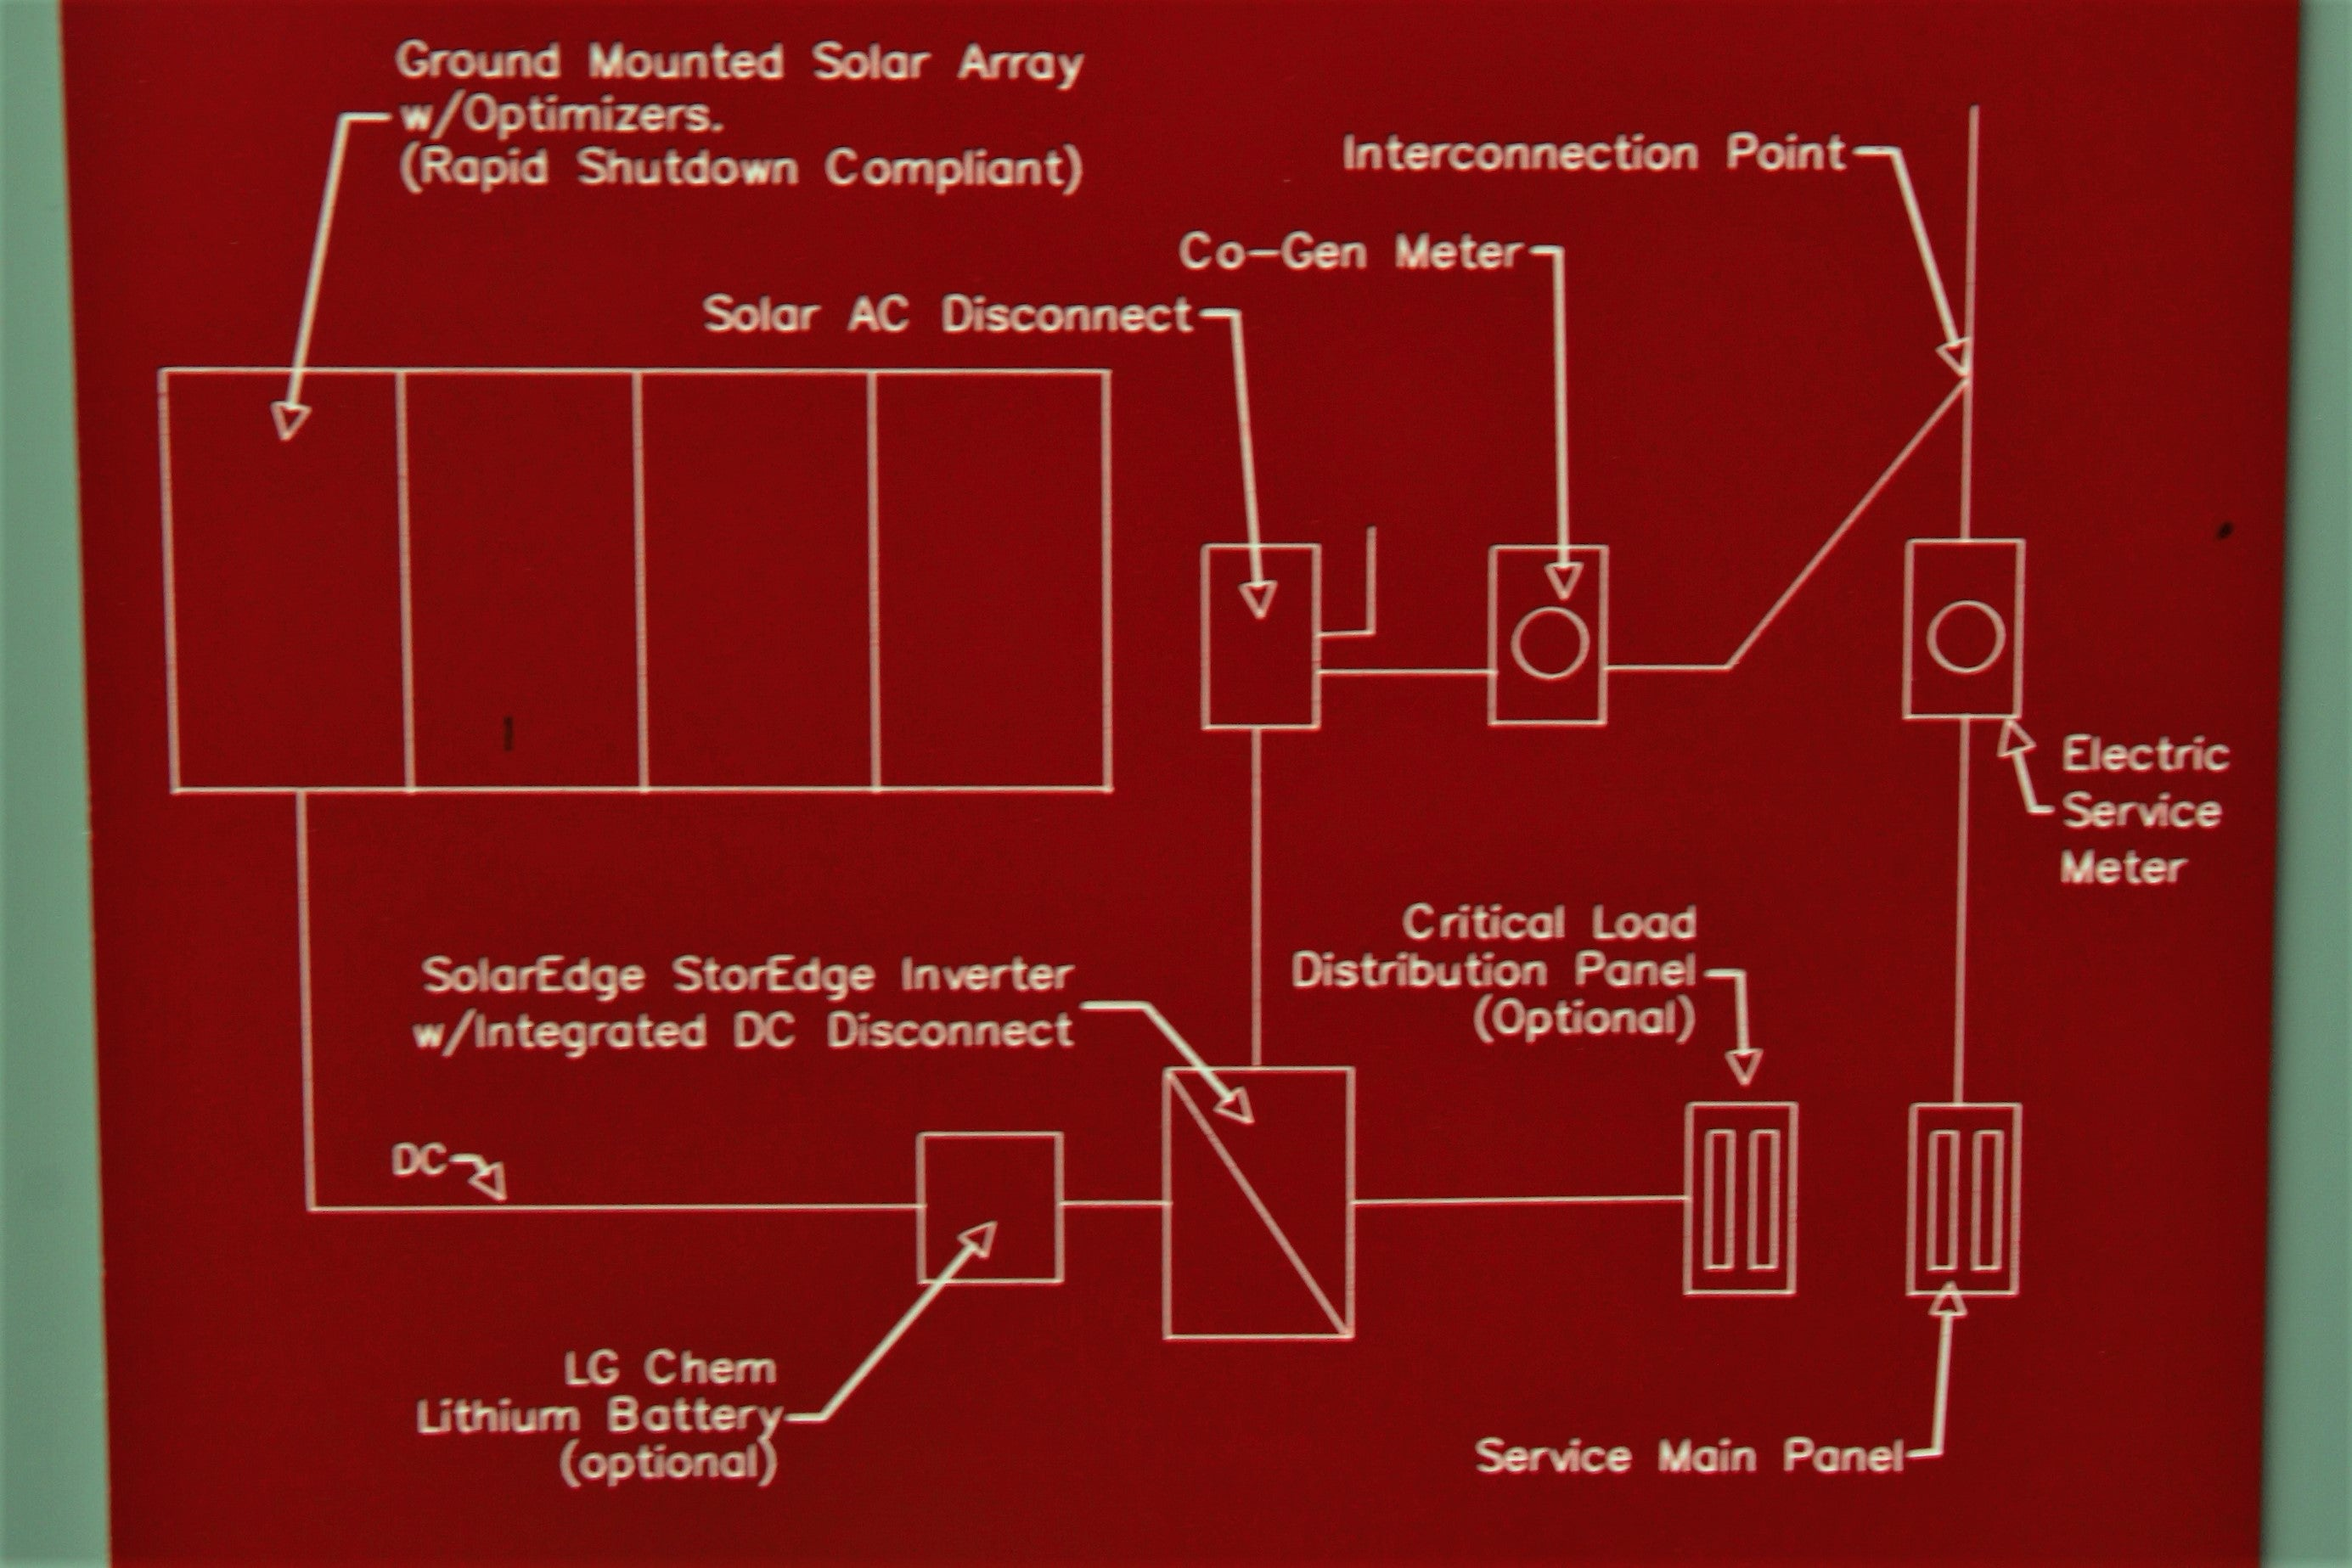 10kW Residential Ground-Mount Grid-Tied Solar Installation